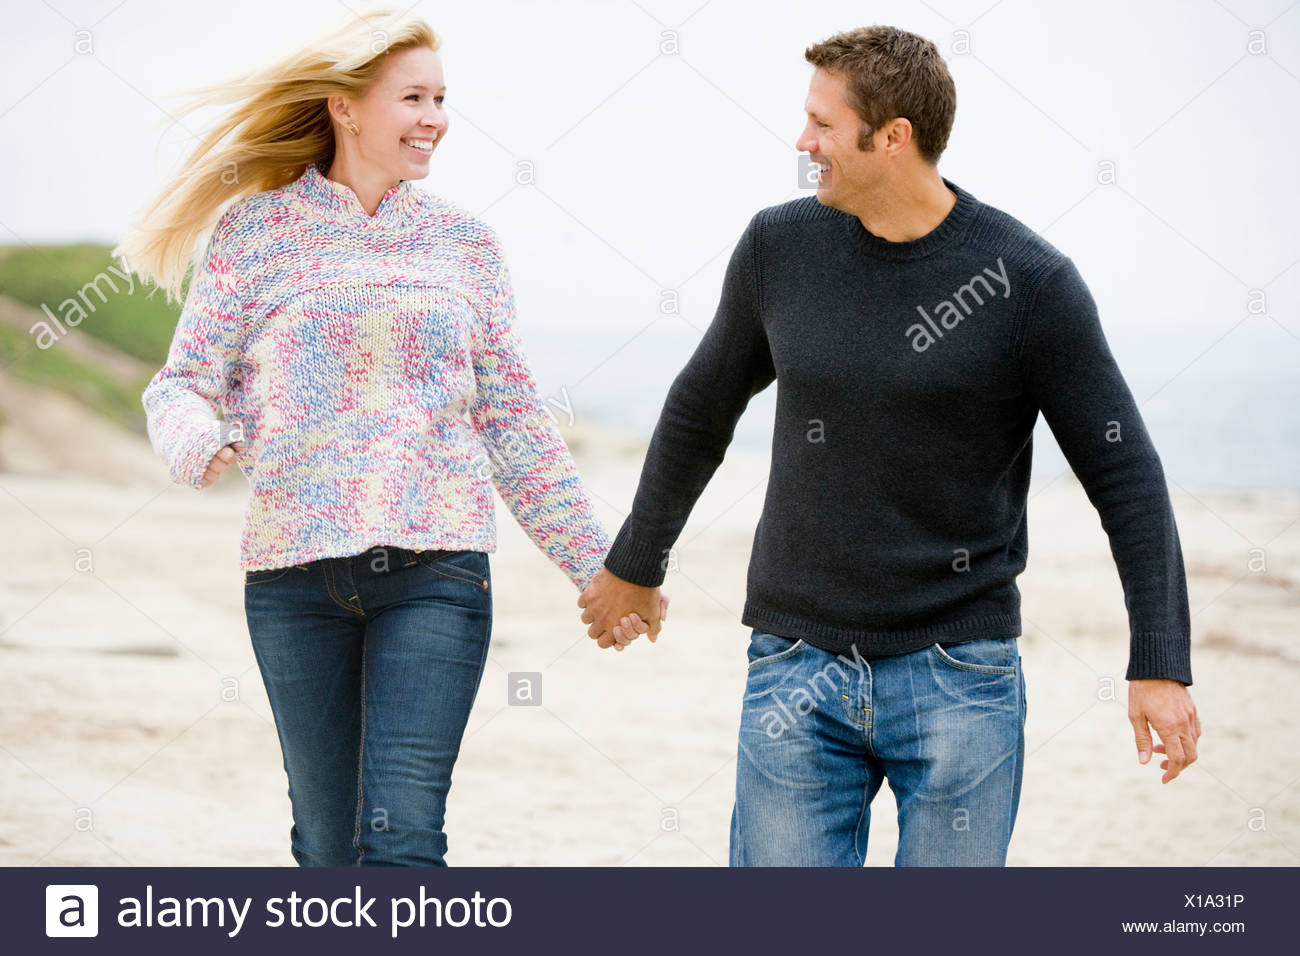 Couple walking at beach holding hands smiling Stock Photo